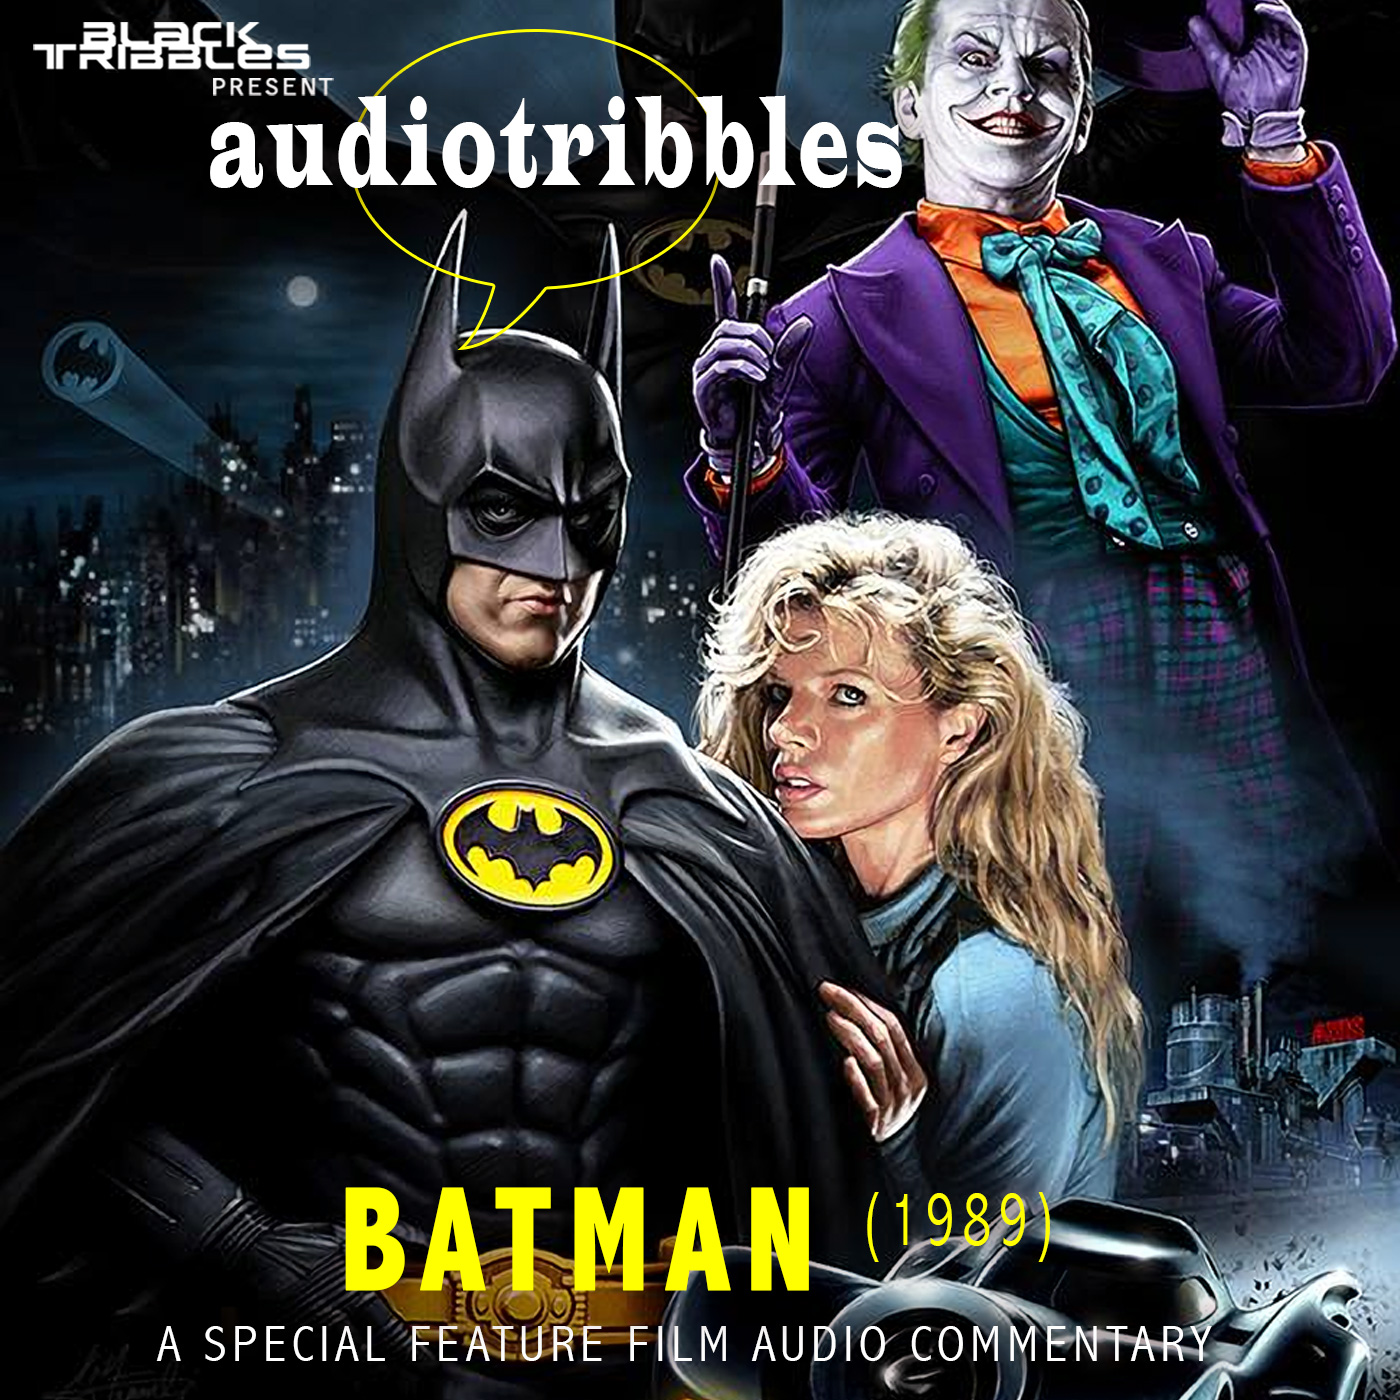 AUDIO01-Batman.jpg